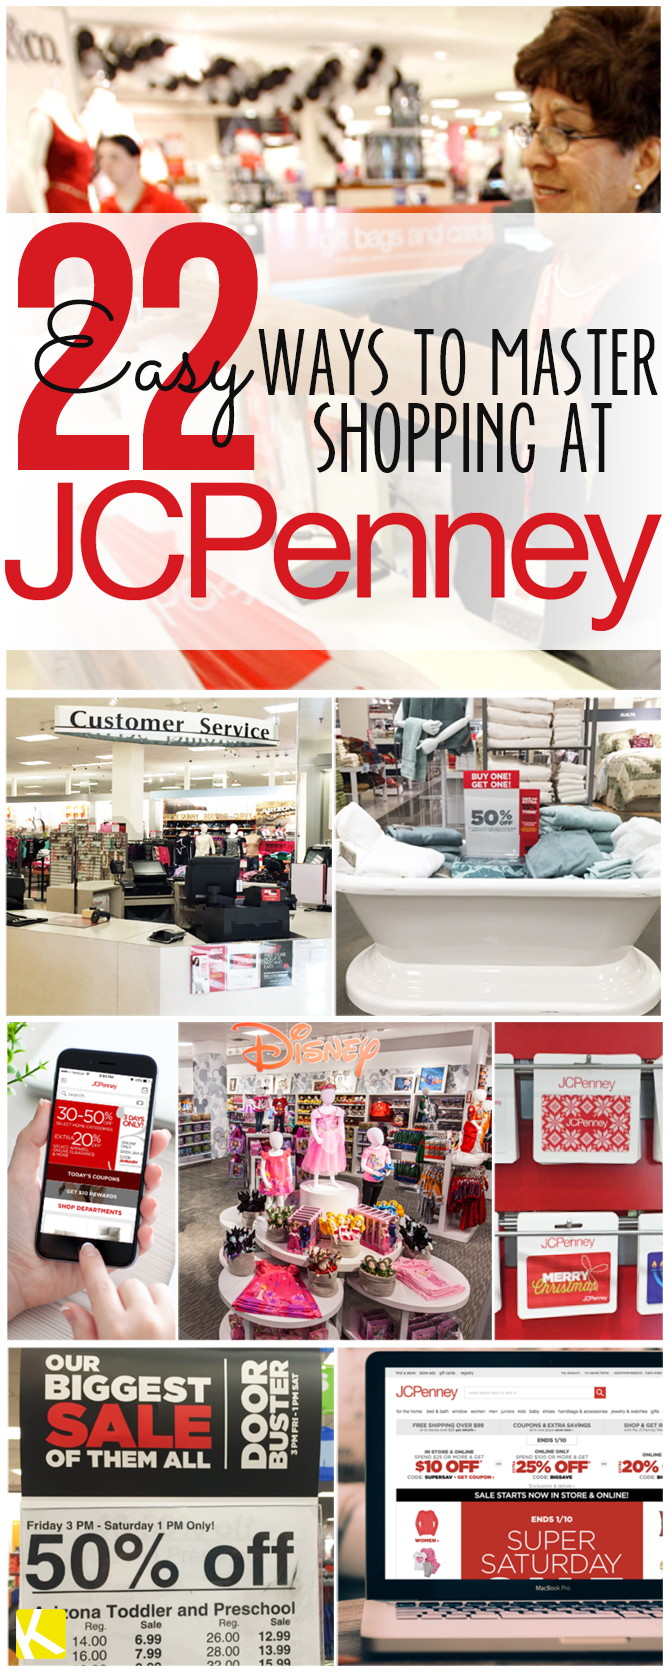 36edd92413796 19 Things You Probably Didn t Know About Shopping at JCPenney - The ...